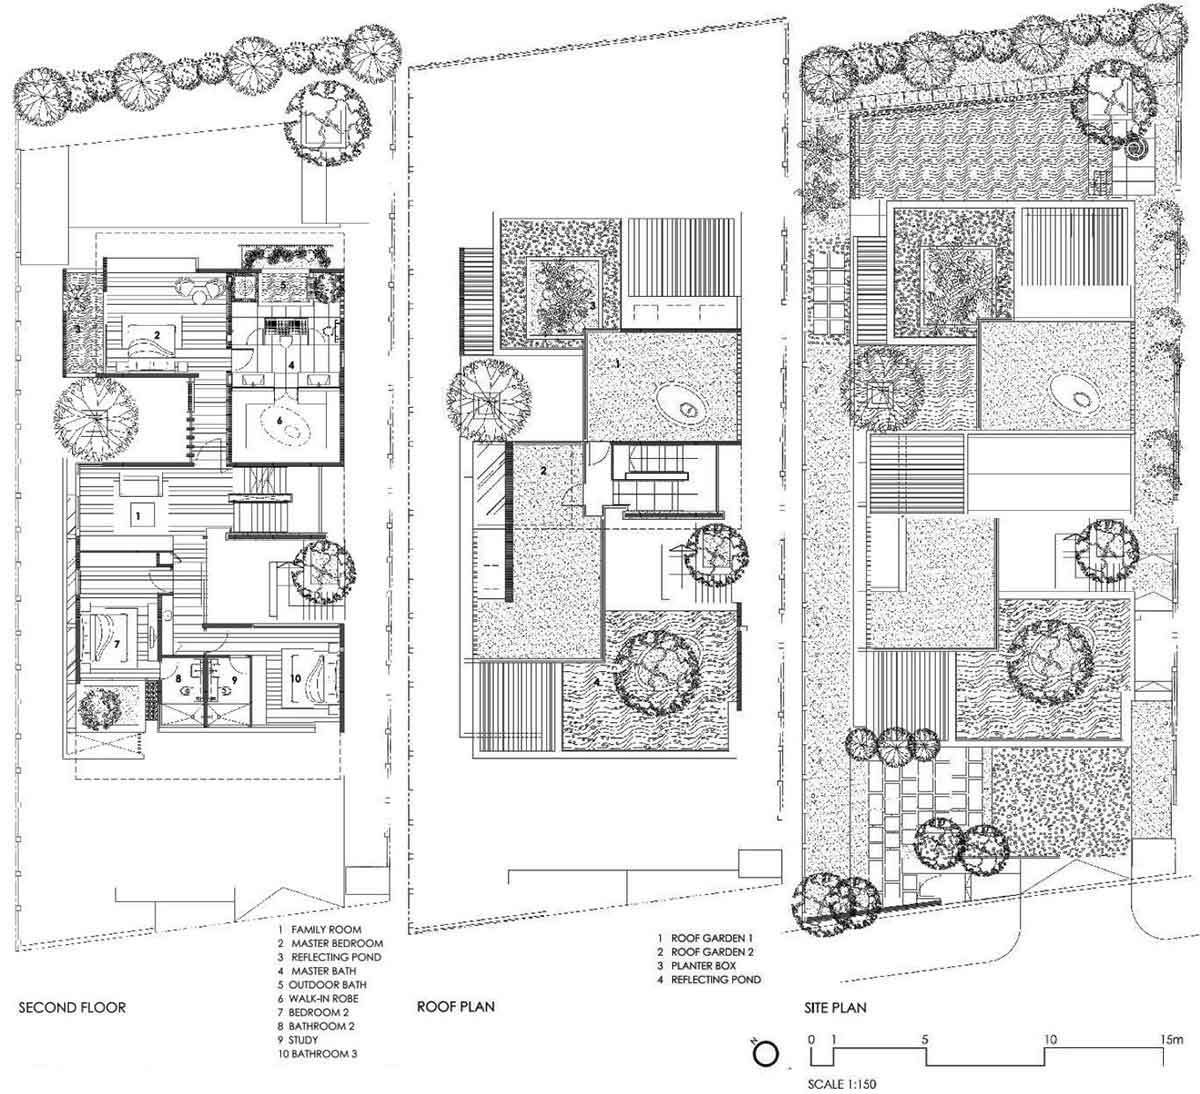 Second Floor  Roof  amp  Site Plans  Sunset Vale House  Singapore by    Second Floor  Roof  amp  Site Plans  Sunset Vale House  Singapore by WOW Architects